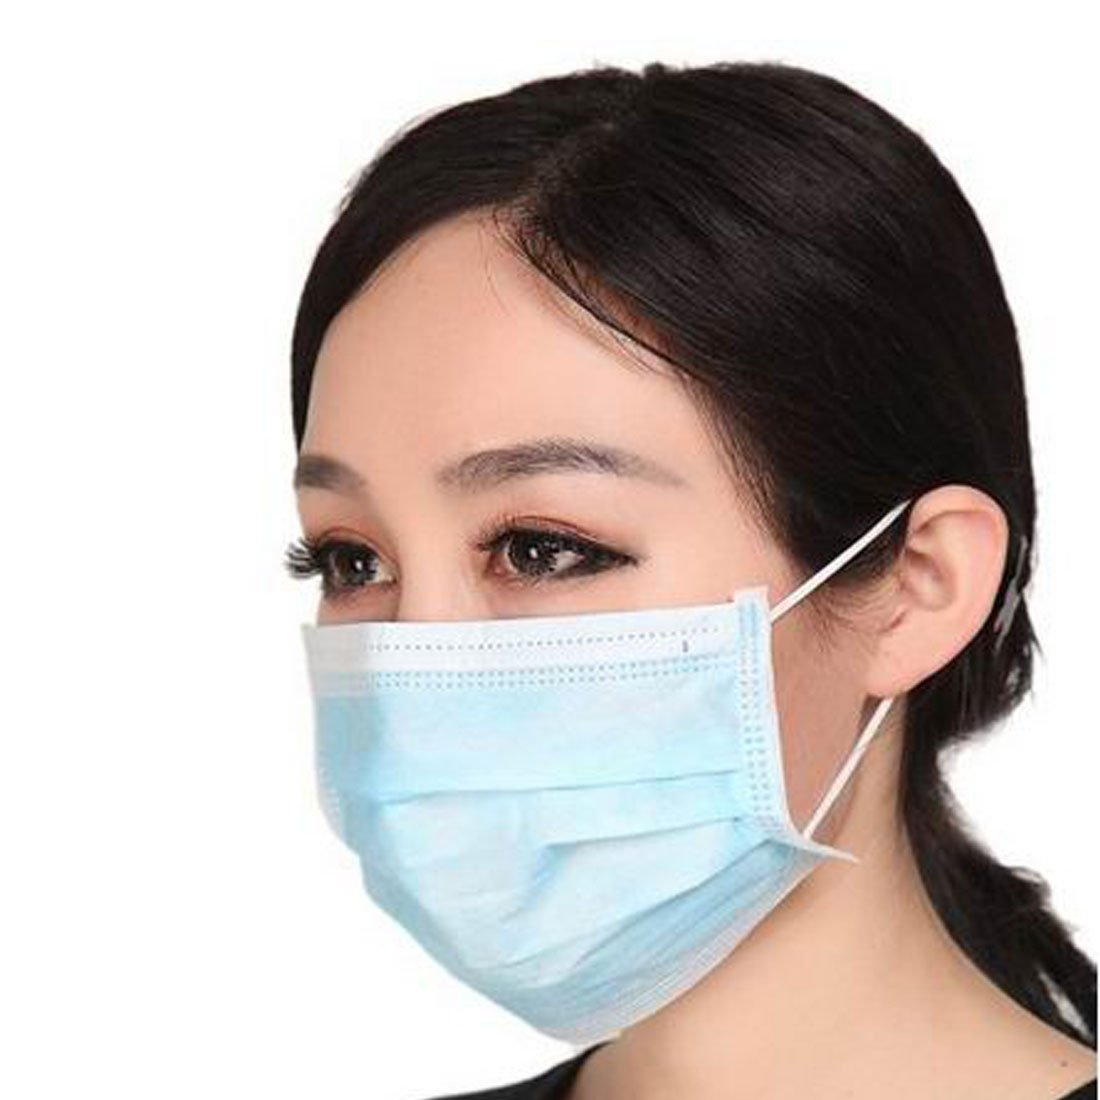 surgical mask - photo #8